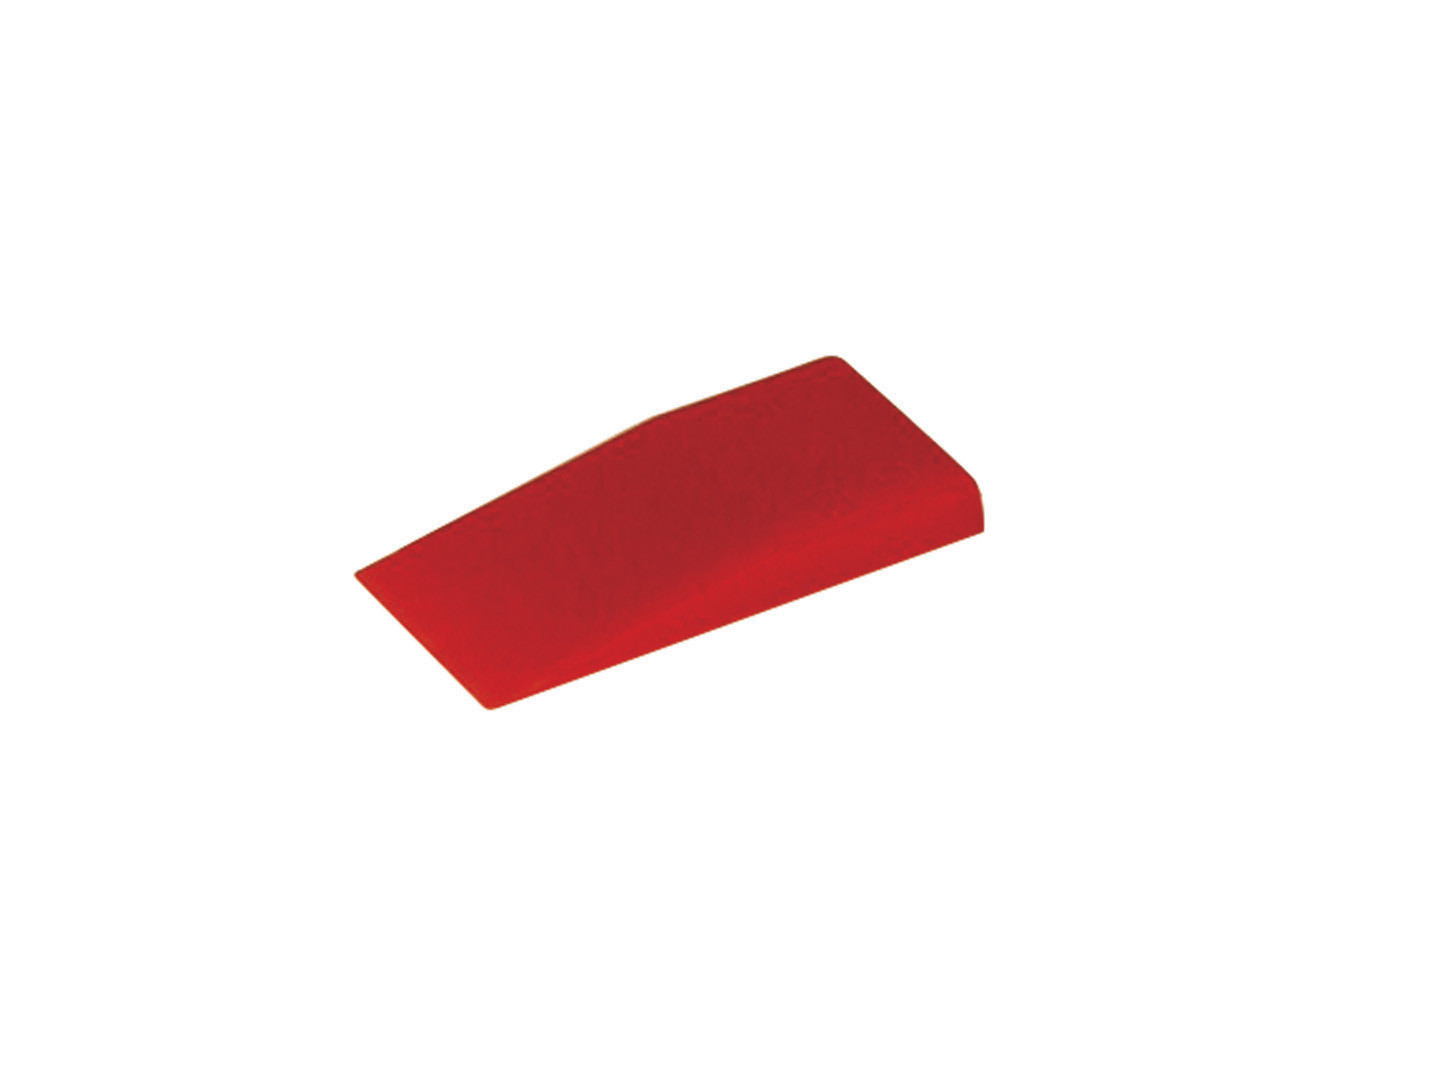 Folding wedge red 40 23x5 KS